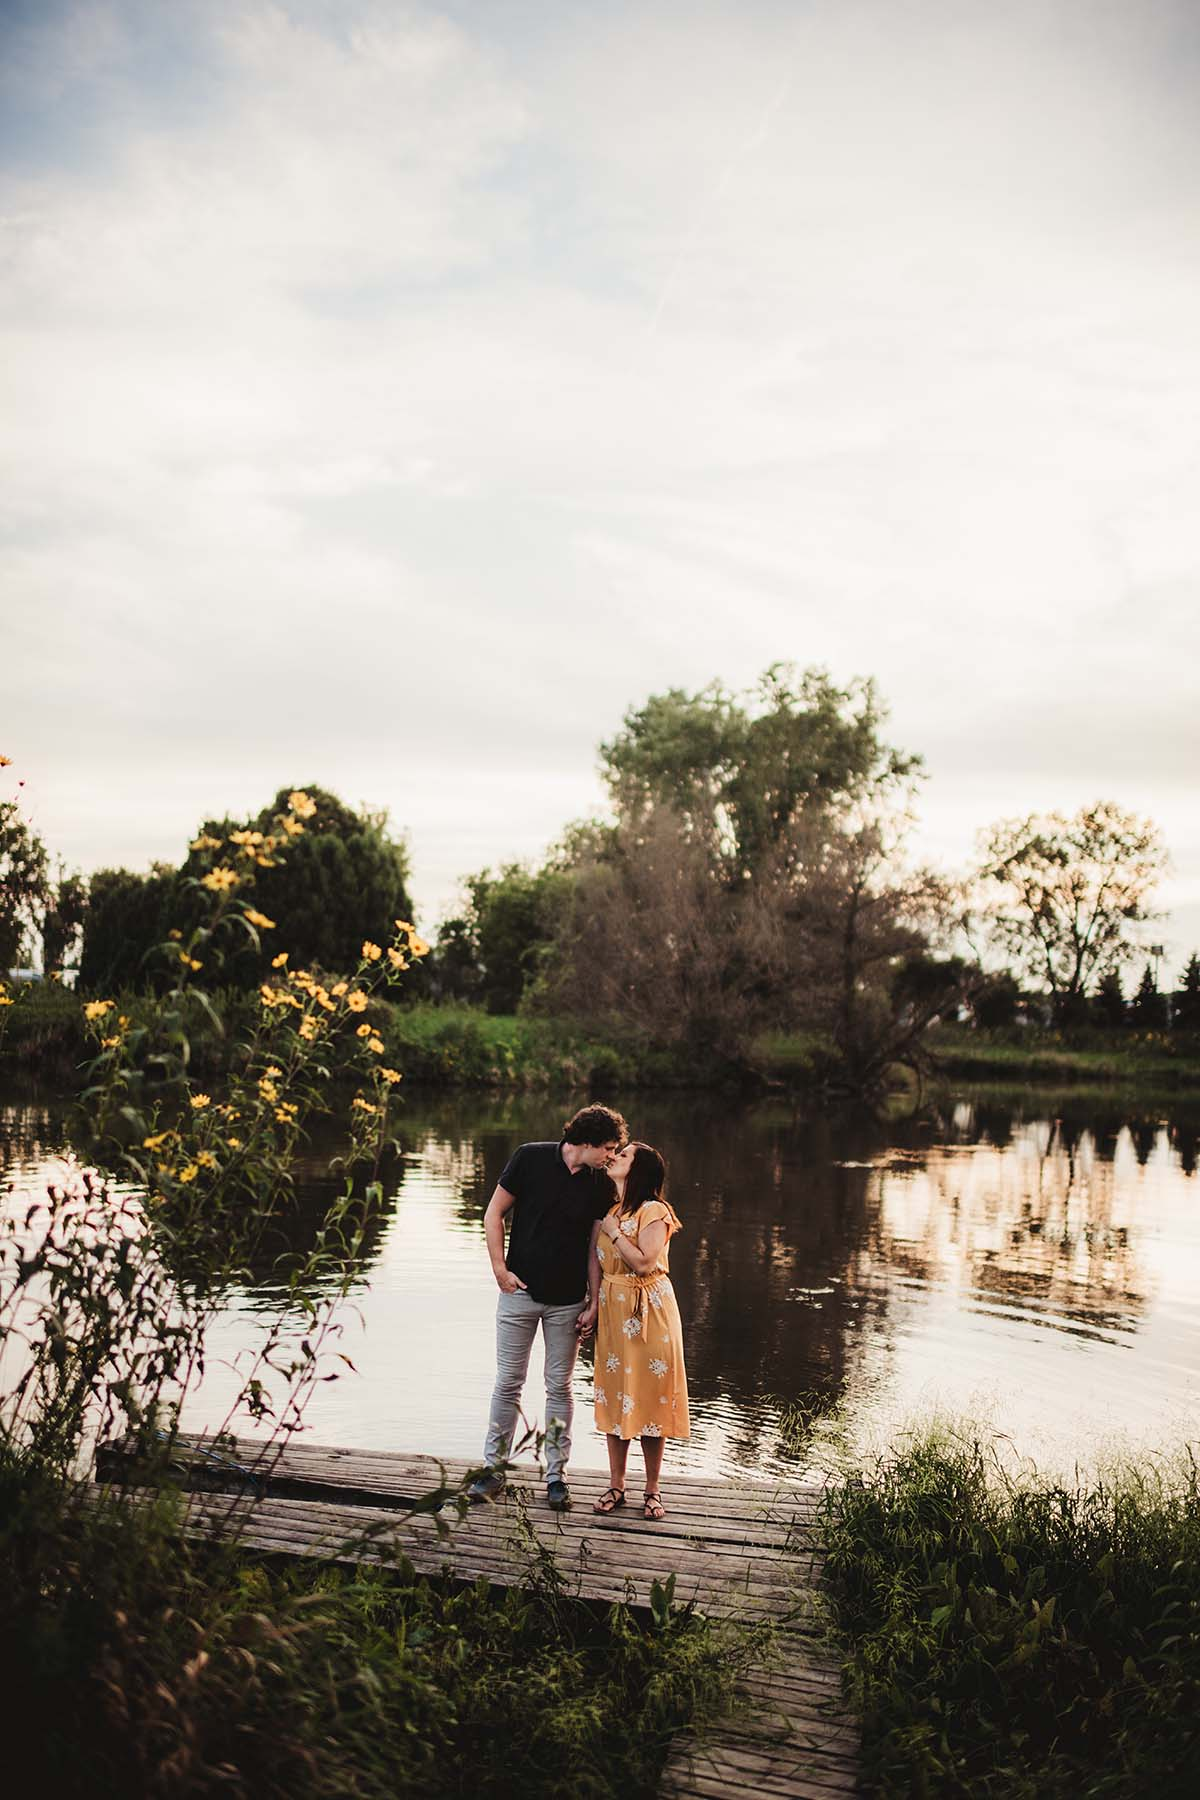 couple near a pond at sunset